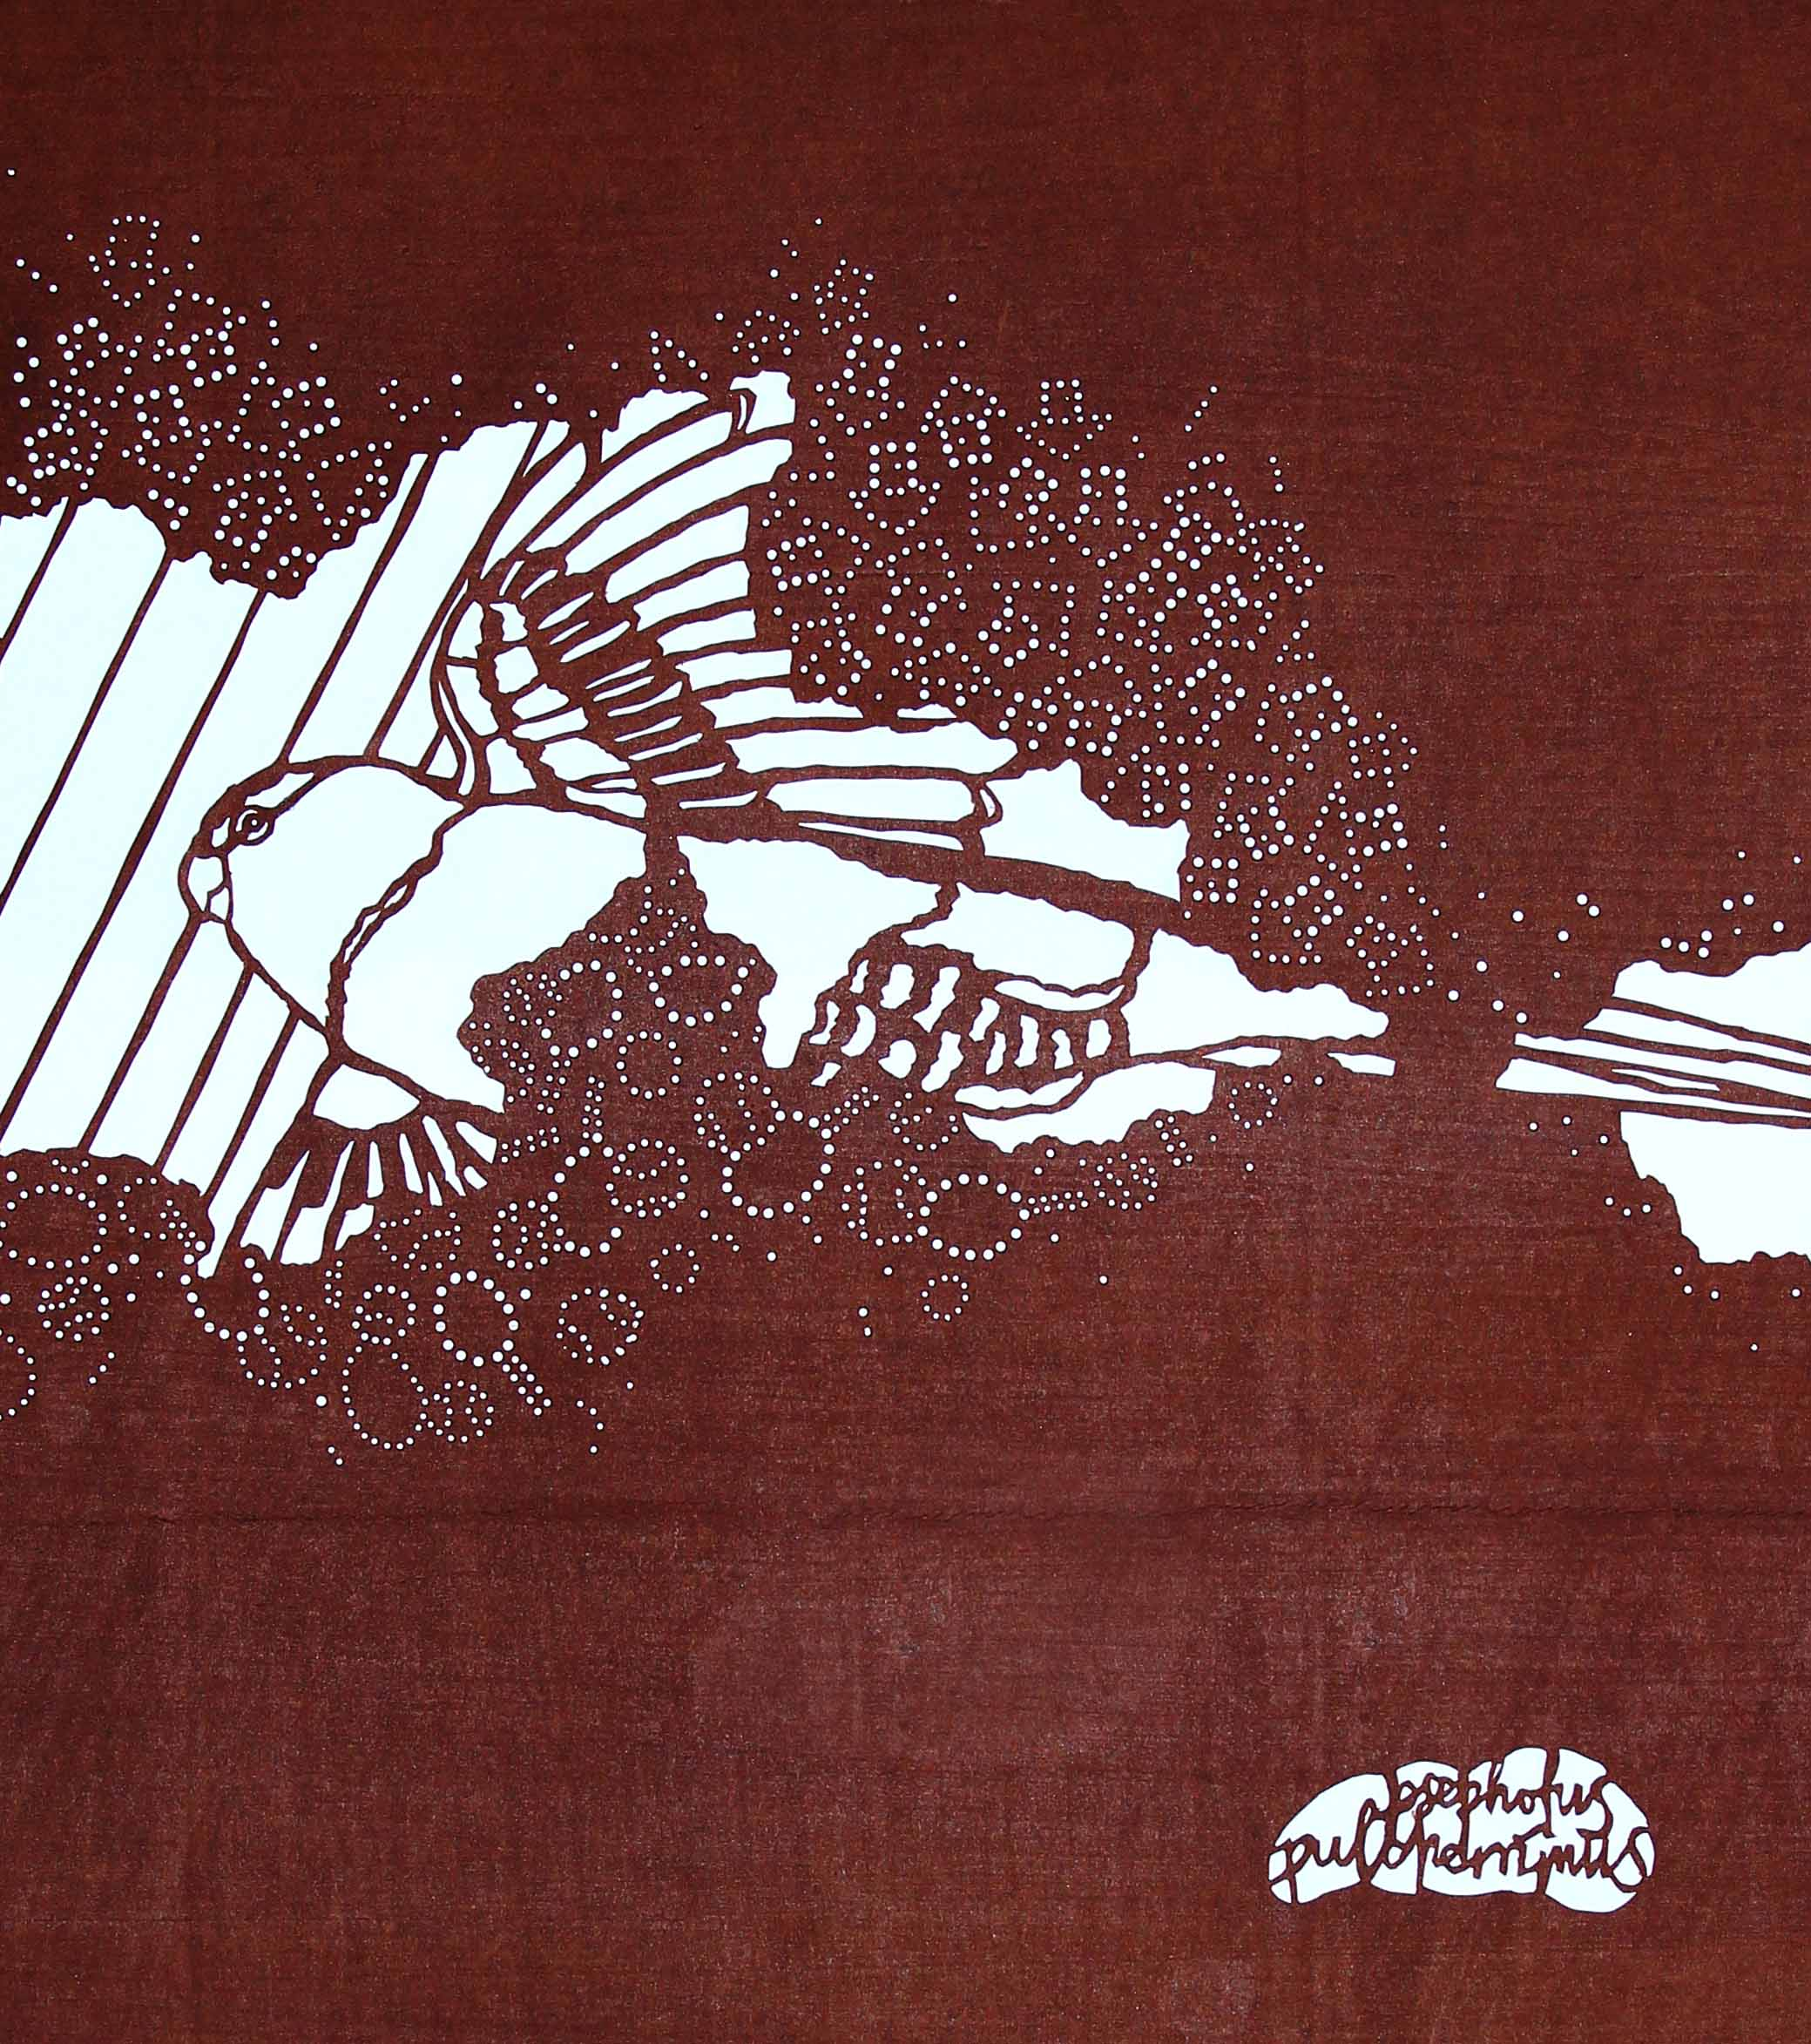 Hand-cut katagami stencil, Paradise Parrot, 2014. A playful depiction of the now extinct Paradise Parrot being overtaken by tennis courts and houses, suspected factors in the demise of their termite-mound nest sites and ultimately the species.